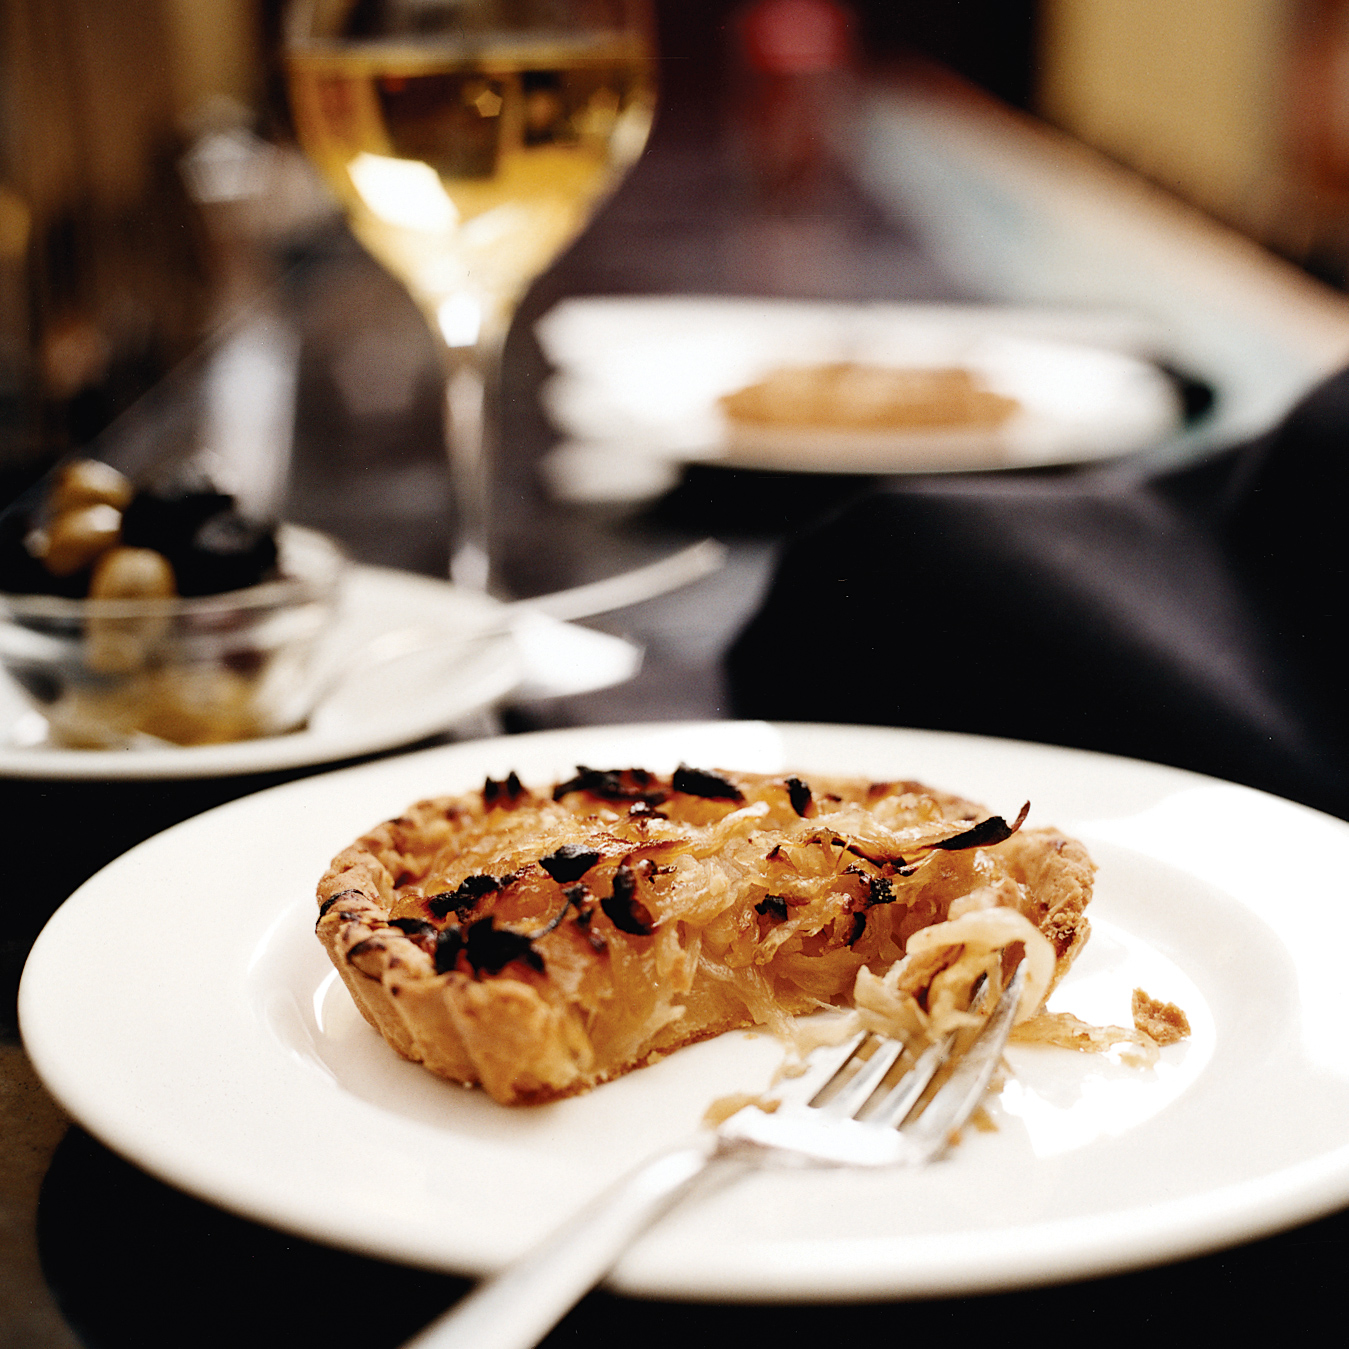 Caramelized Onion and Gruyere Tart Vegetarian Appetizer